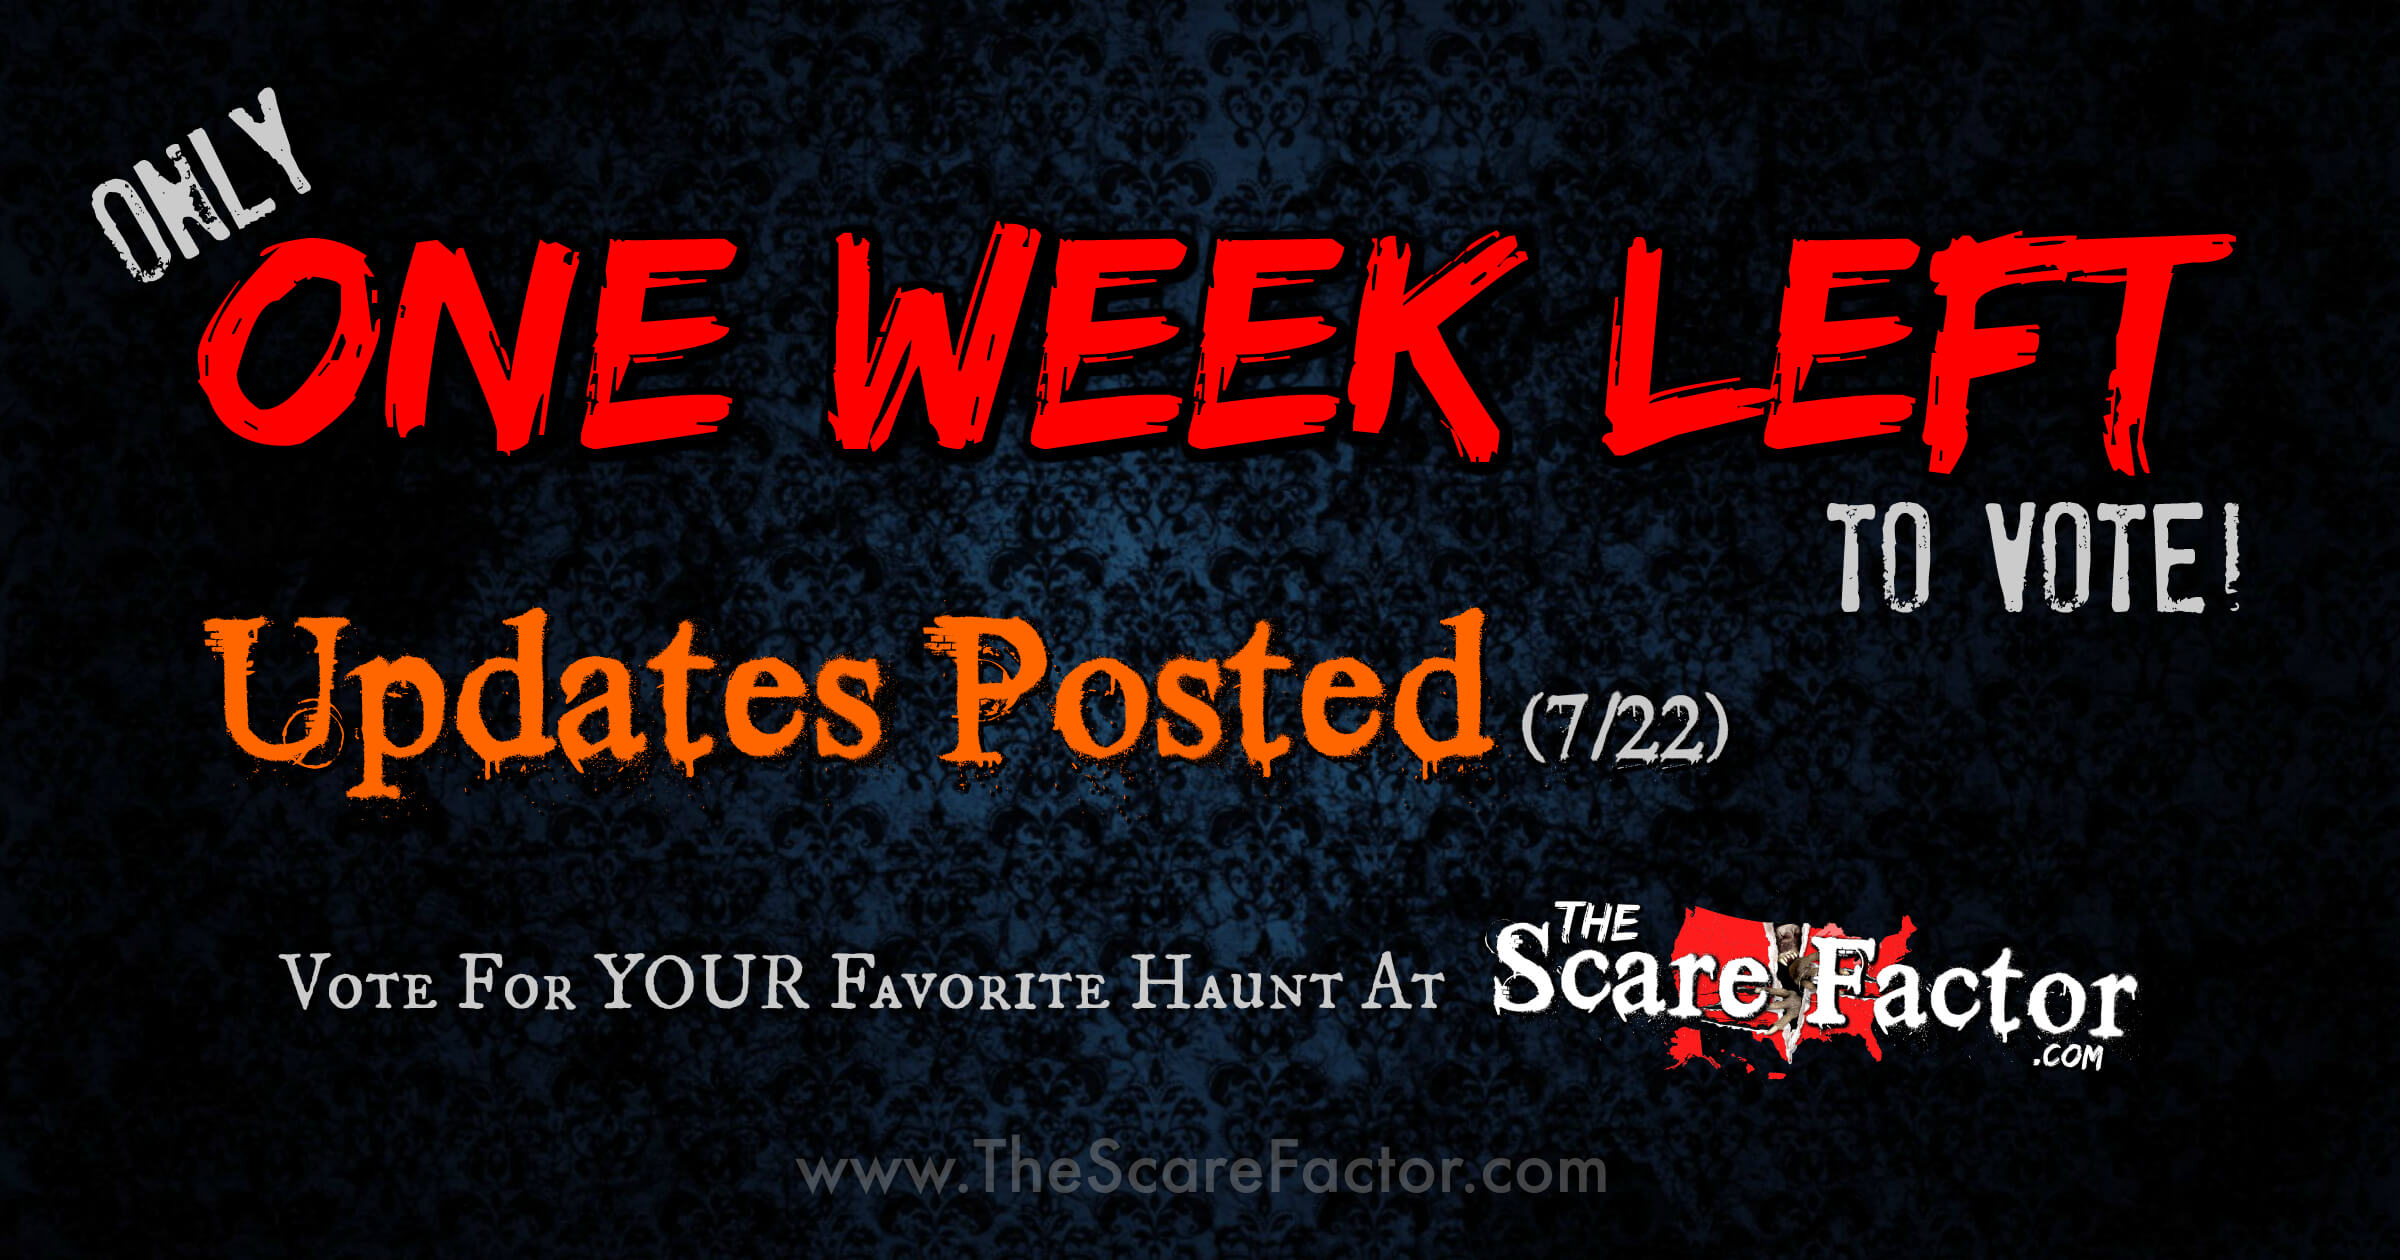 Haunt Blog - The Scare Factor Haunt Reviews and Directory